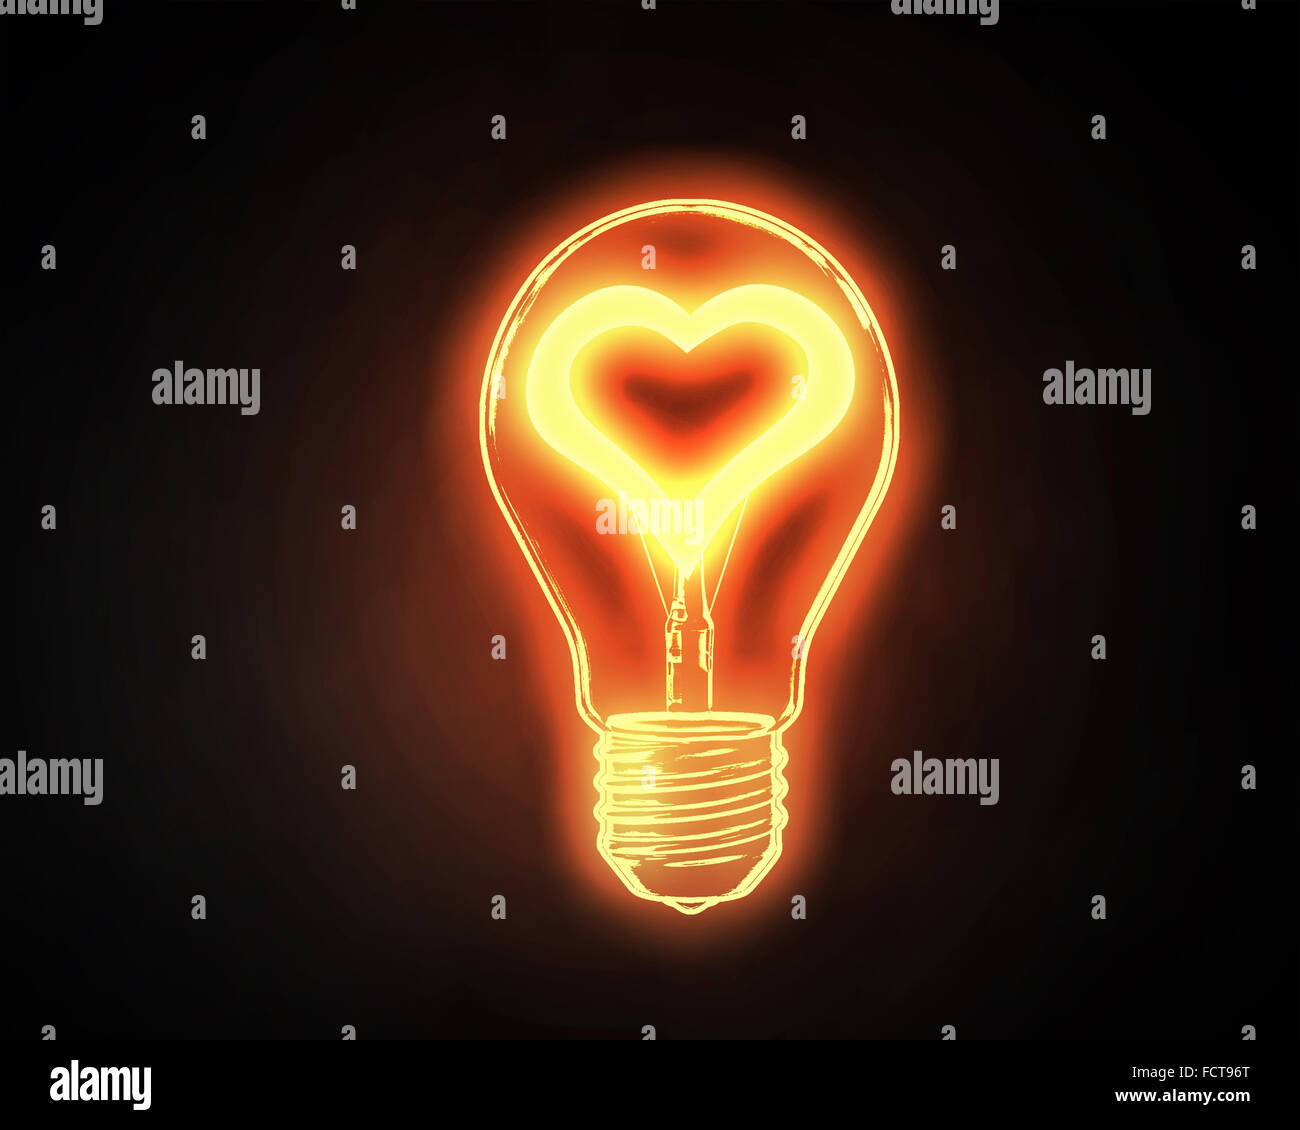 Lightbulb With glowing coeur intérieur onn fond sombre Photo Stock